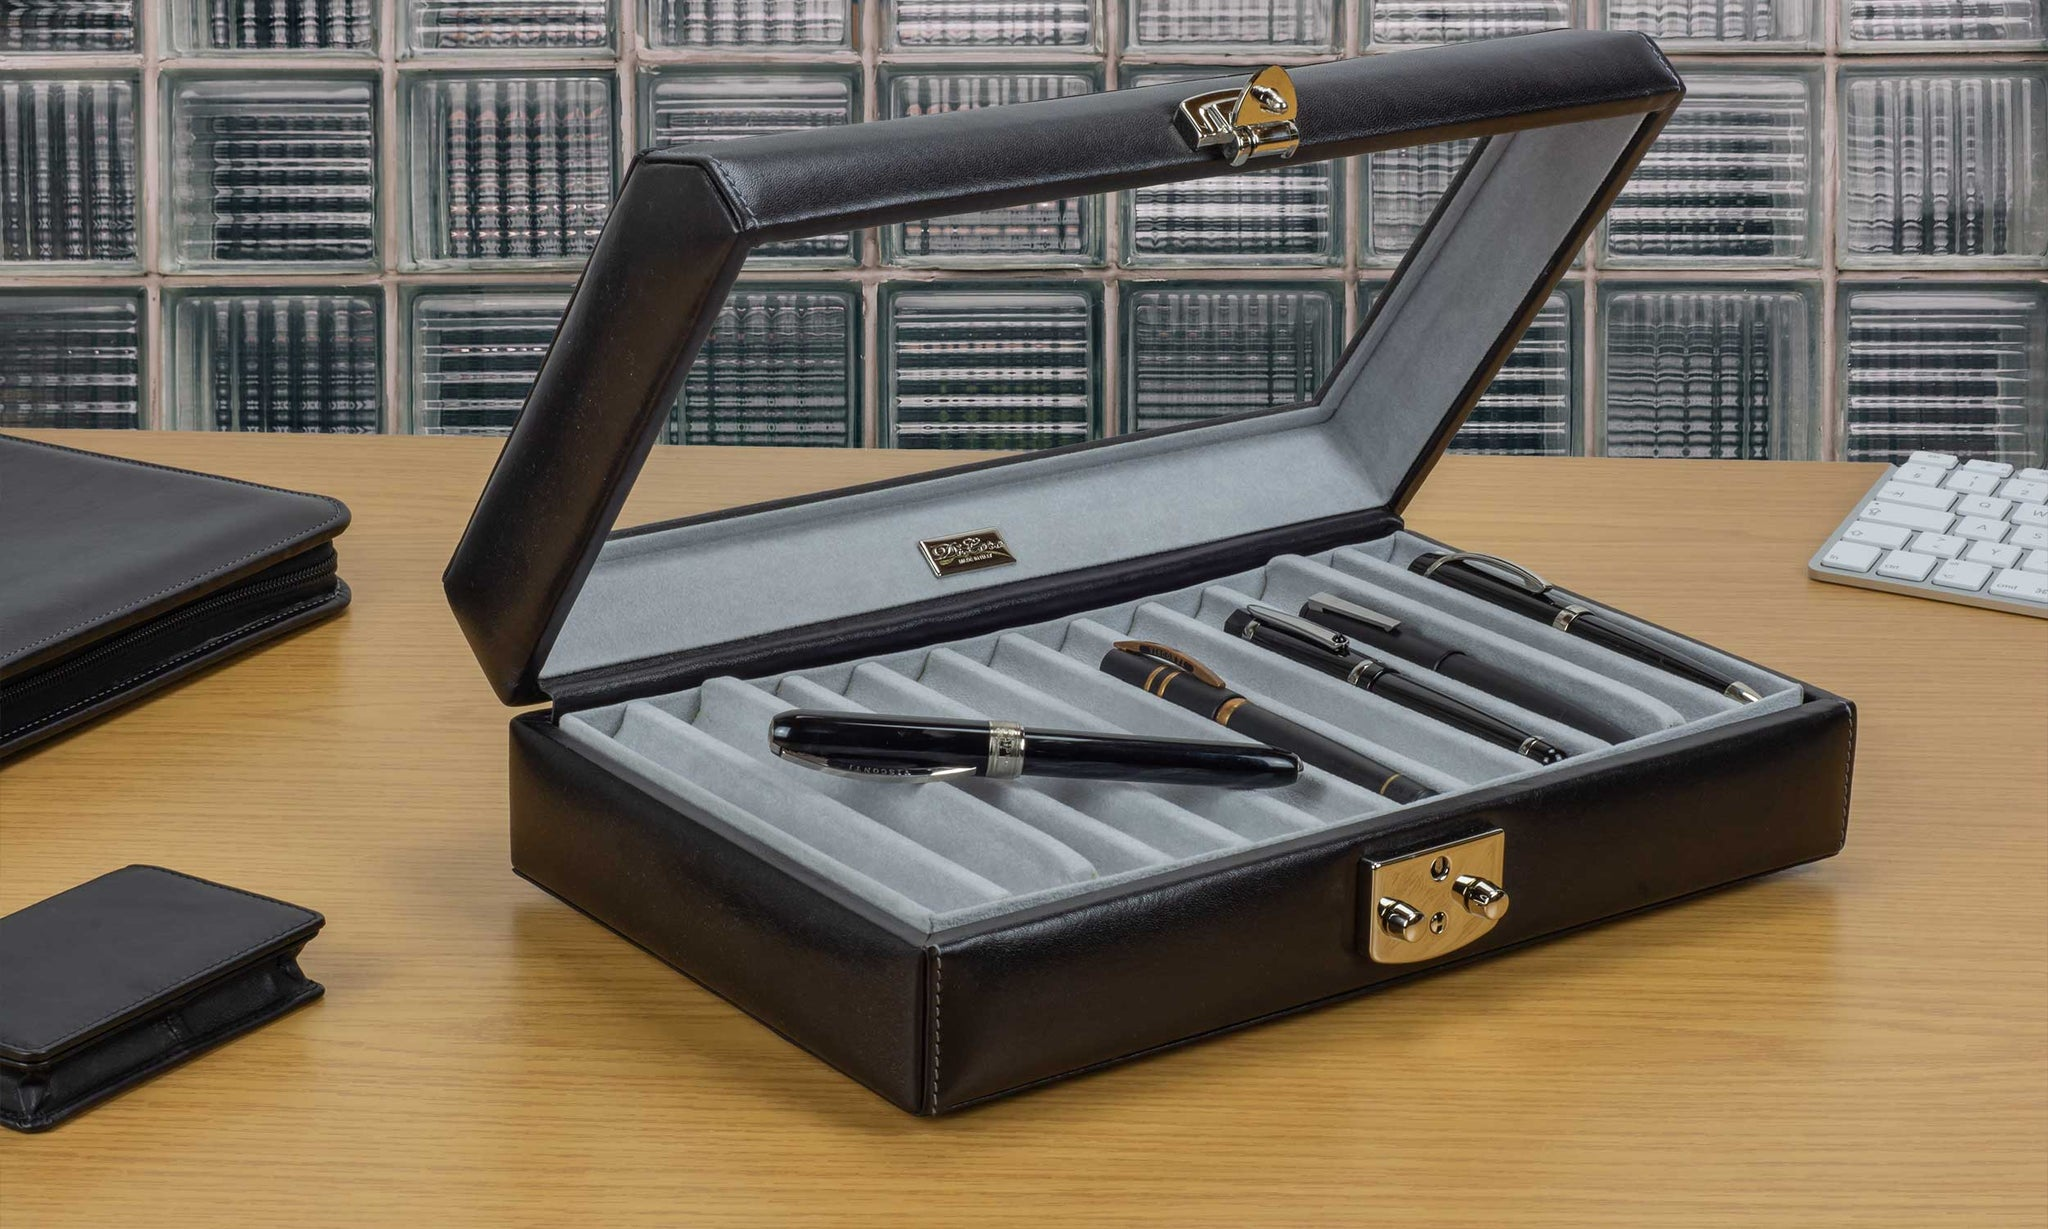 DiLoro Italian Leather 24 Pen Case Display Holder in Midnight Black (pens not included)